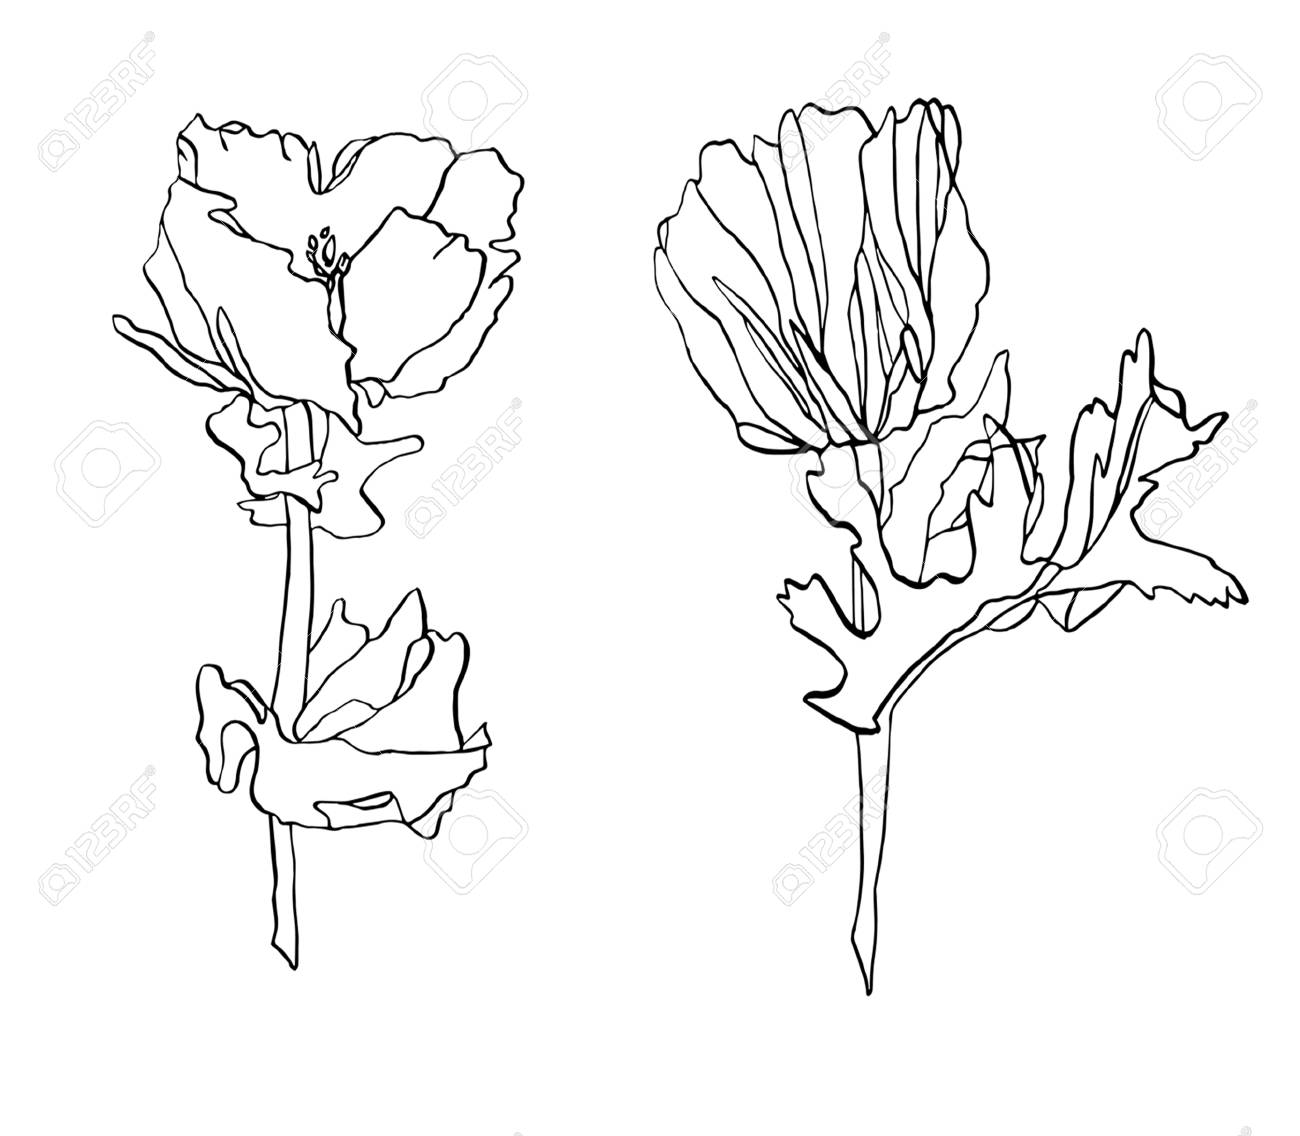 Decorative ink drawing poppy flower with leaves stock photo picture decorative ink drawing poppy flower with leaves stock photo 105061400 mightylinksfo